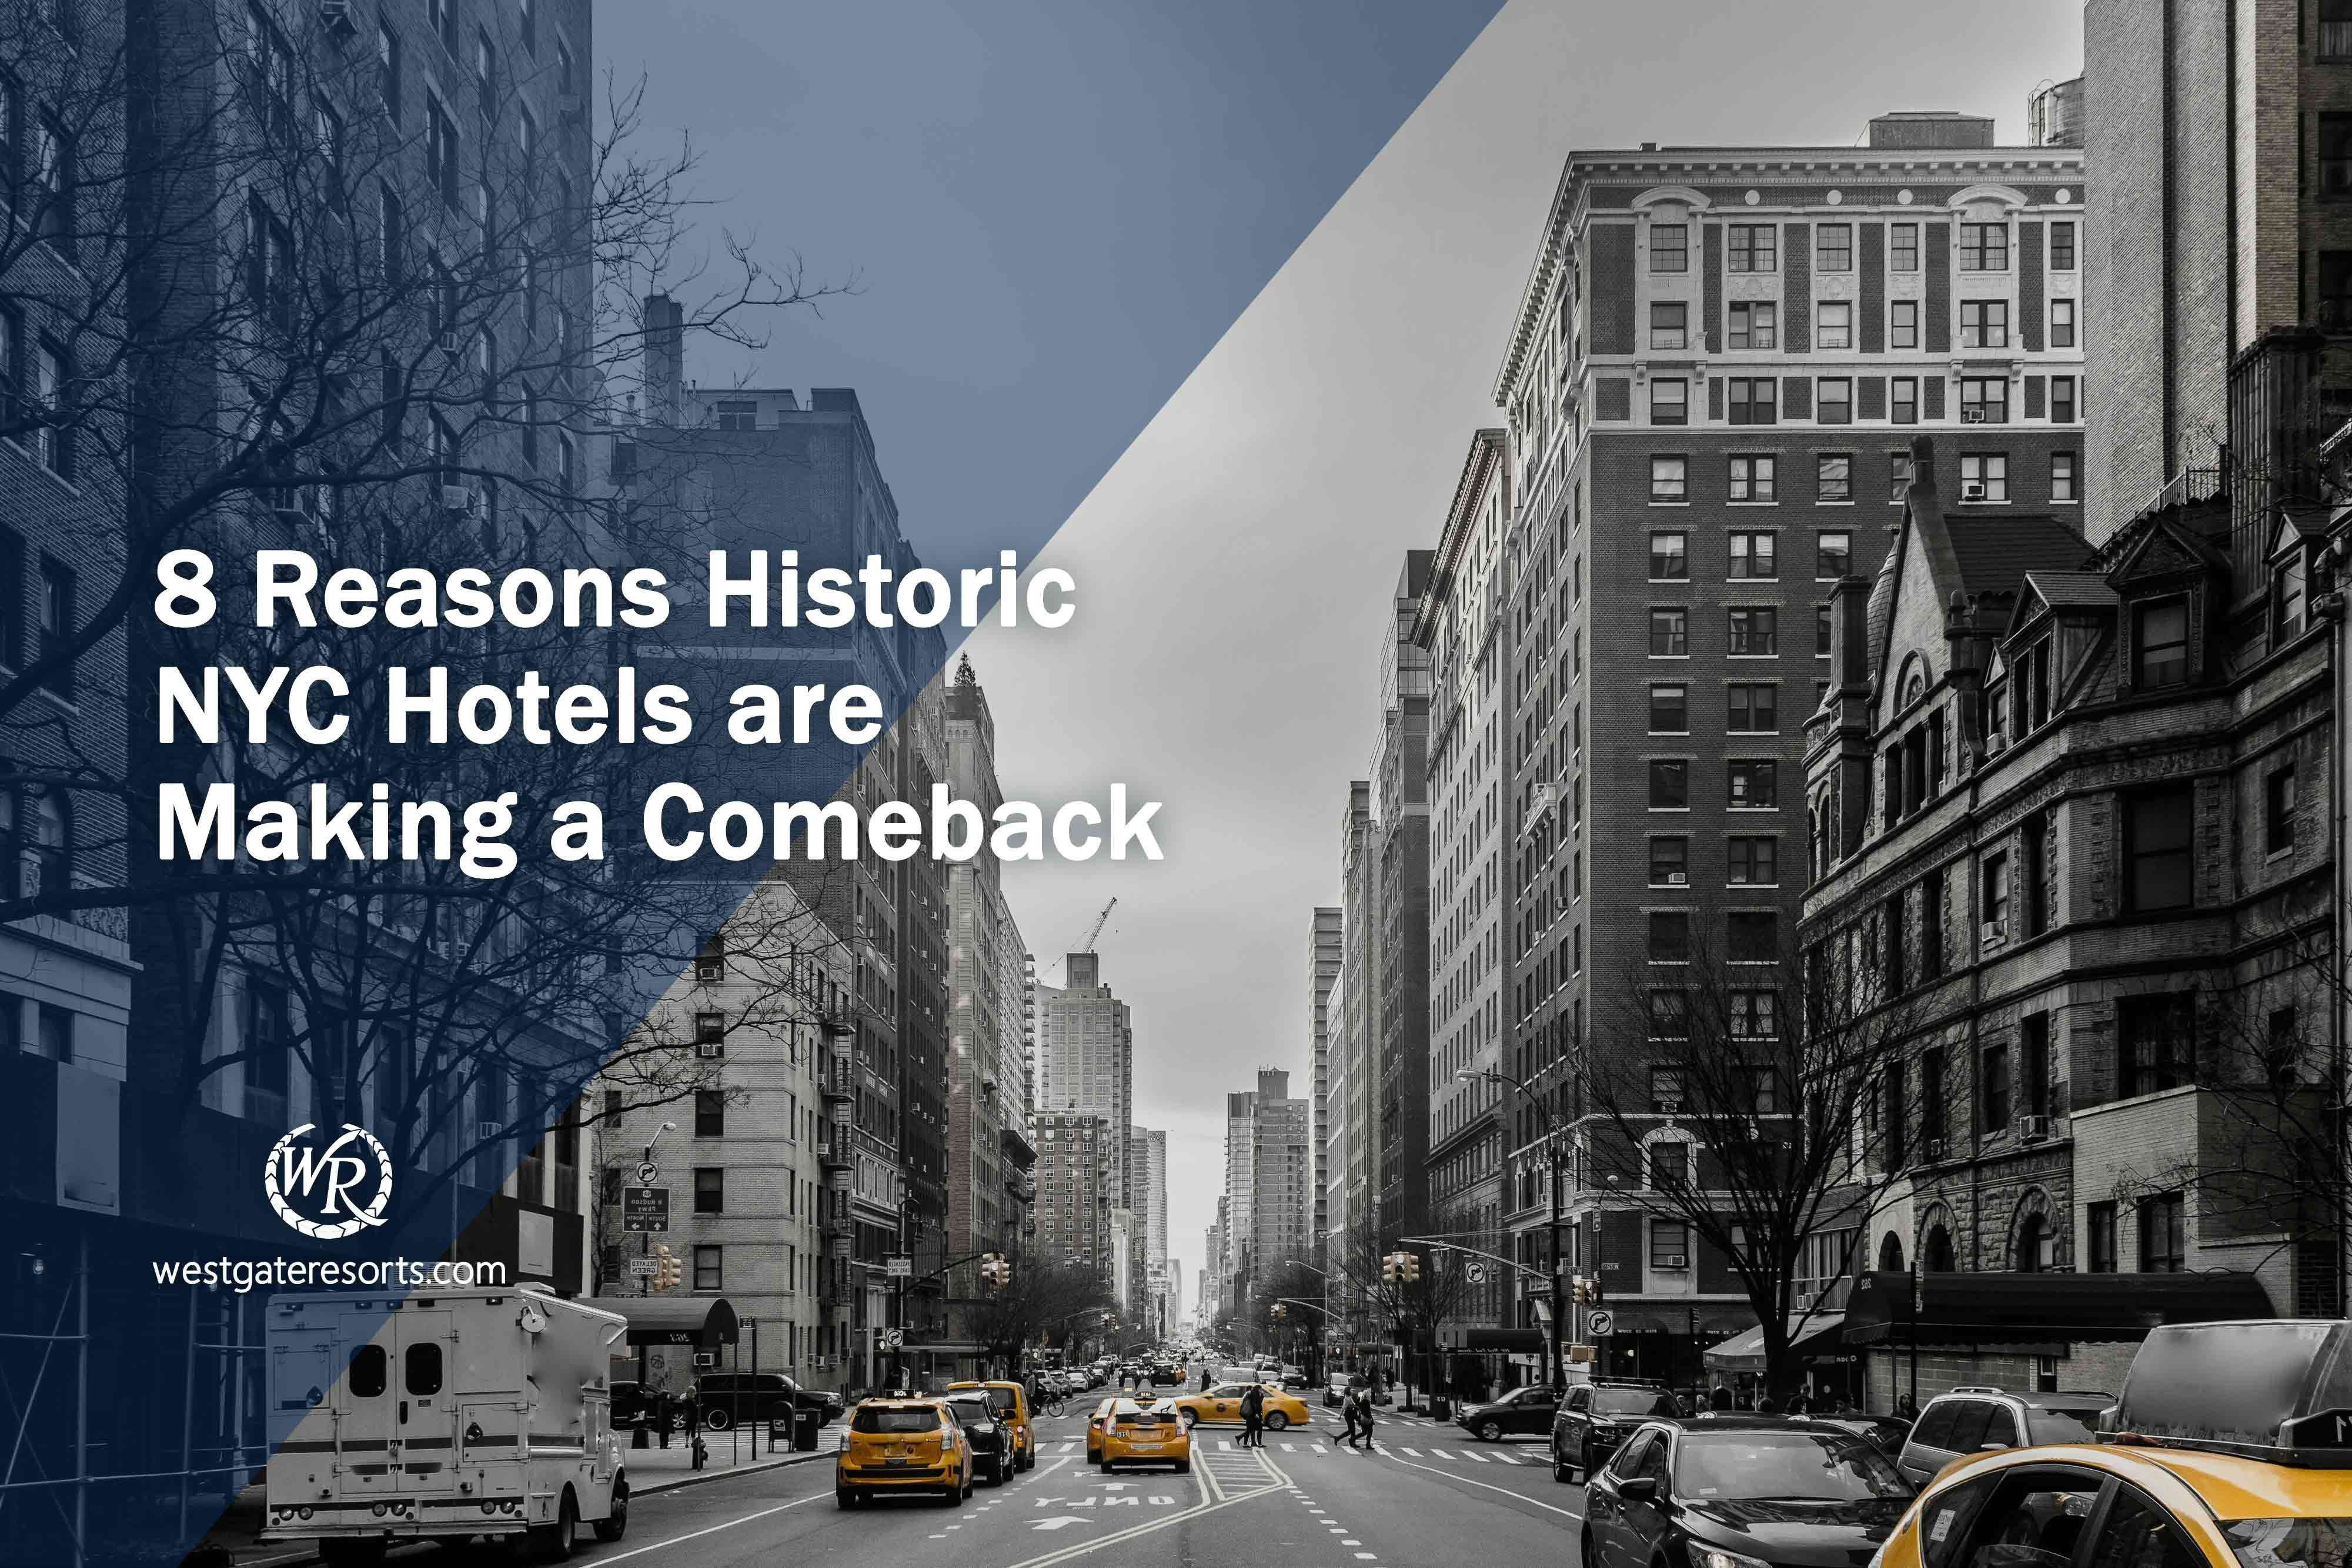 8 Reasons Historic NYC Hotels are Making a Comeback